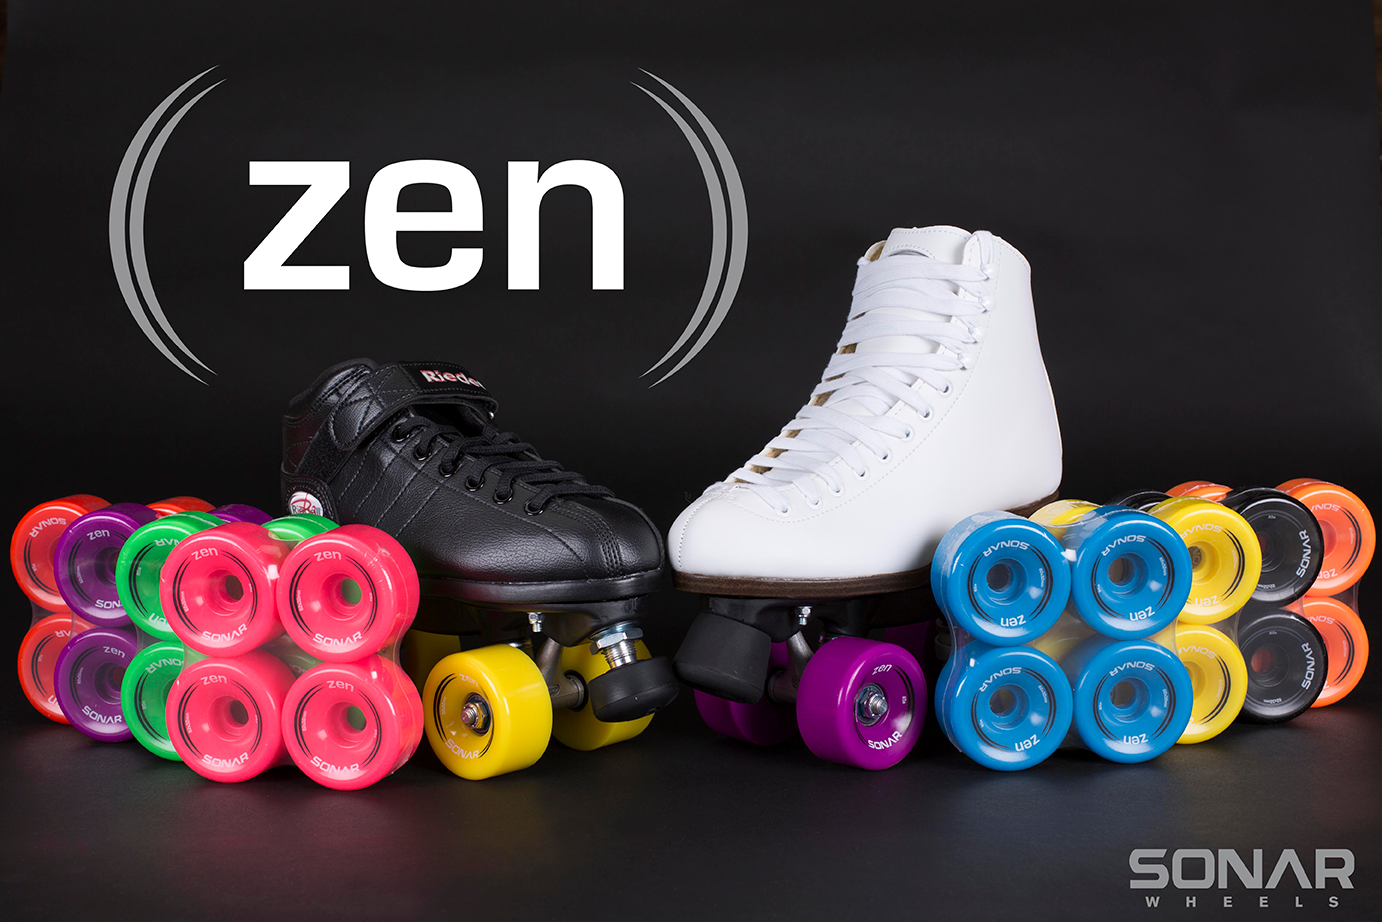 The colorful Sonar Zen outdoor roller skate wheels